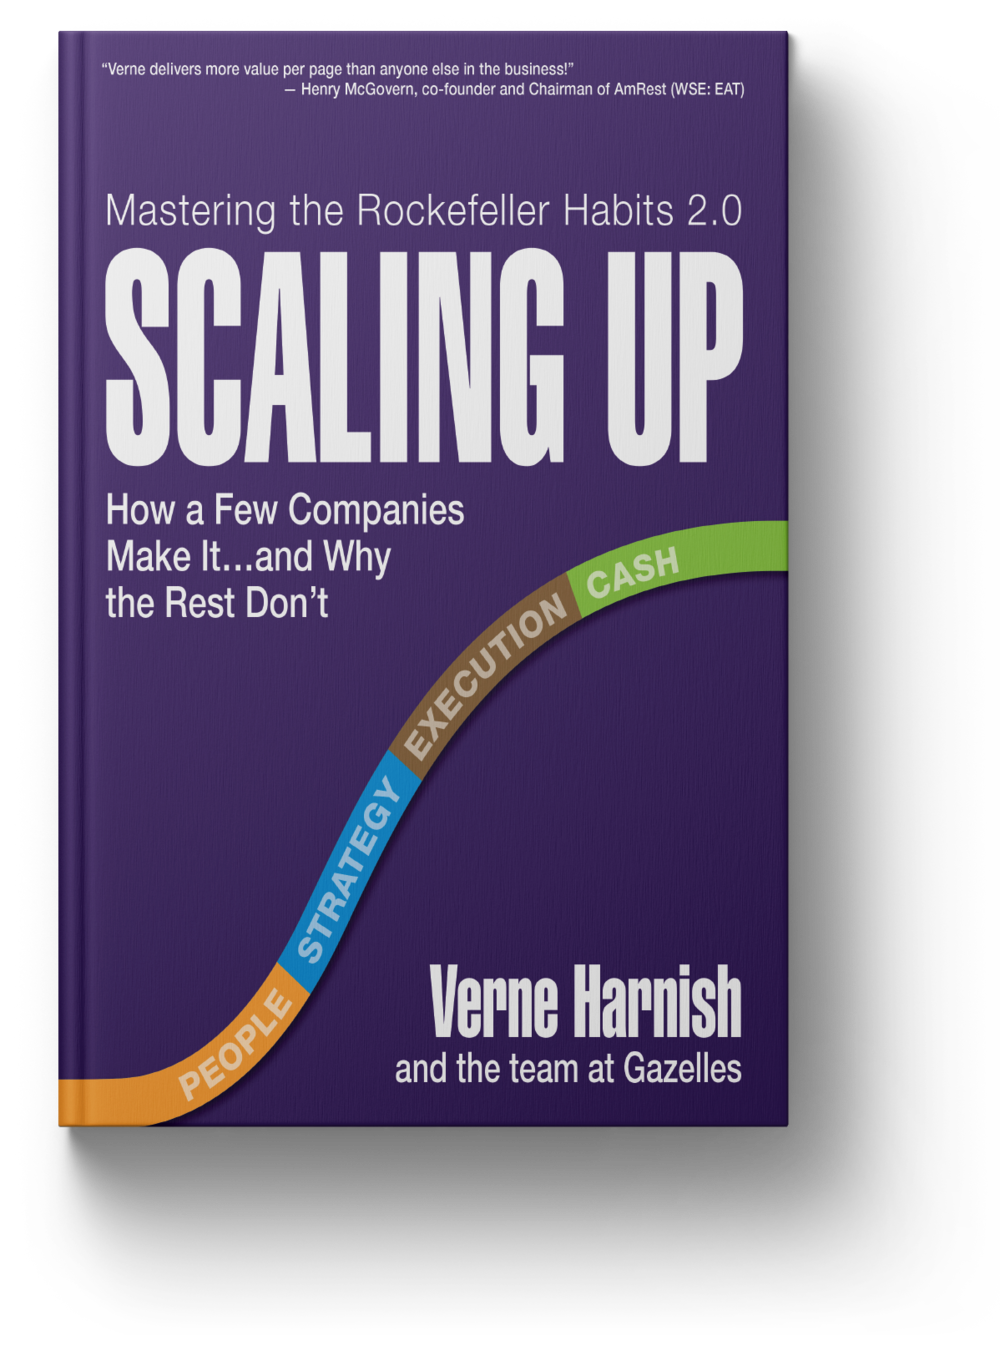 Scaling Up 2014 - (previous edition: Rockefeller Habits 2002)